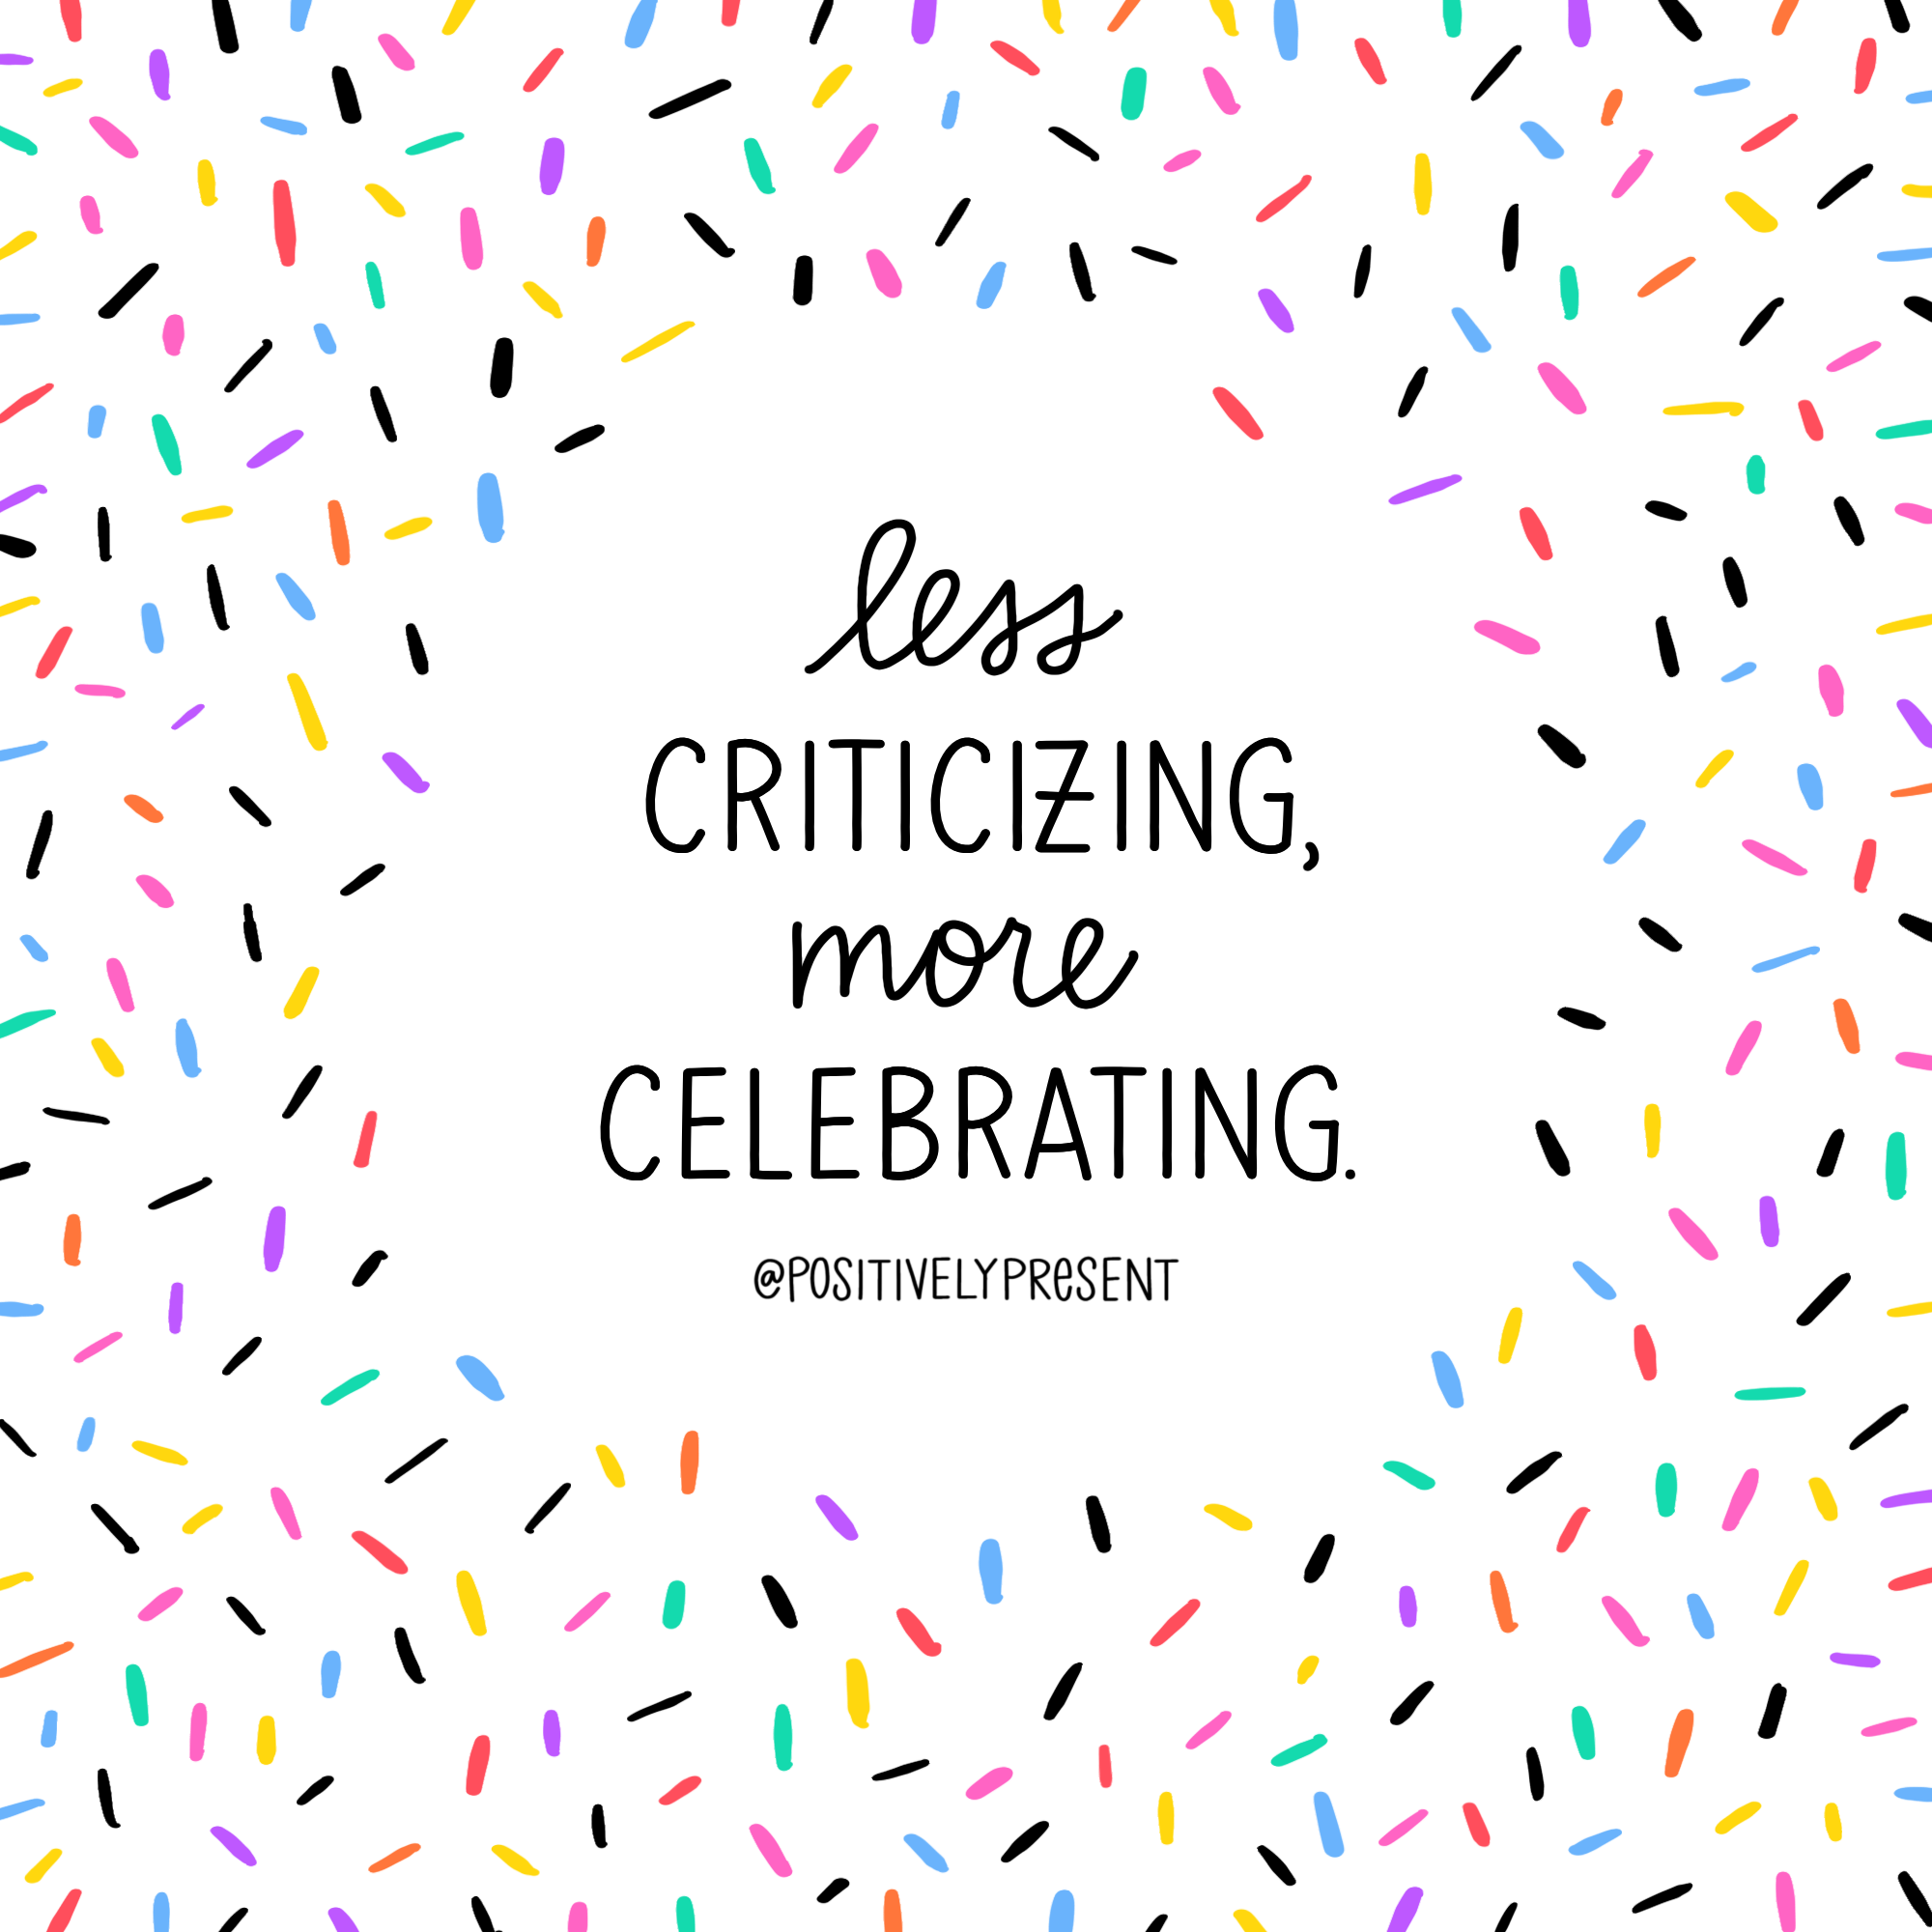 less criticizing